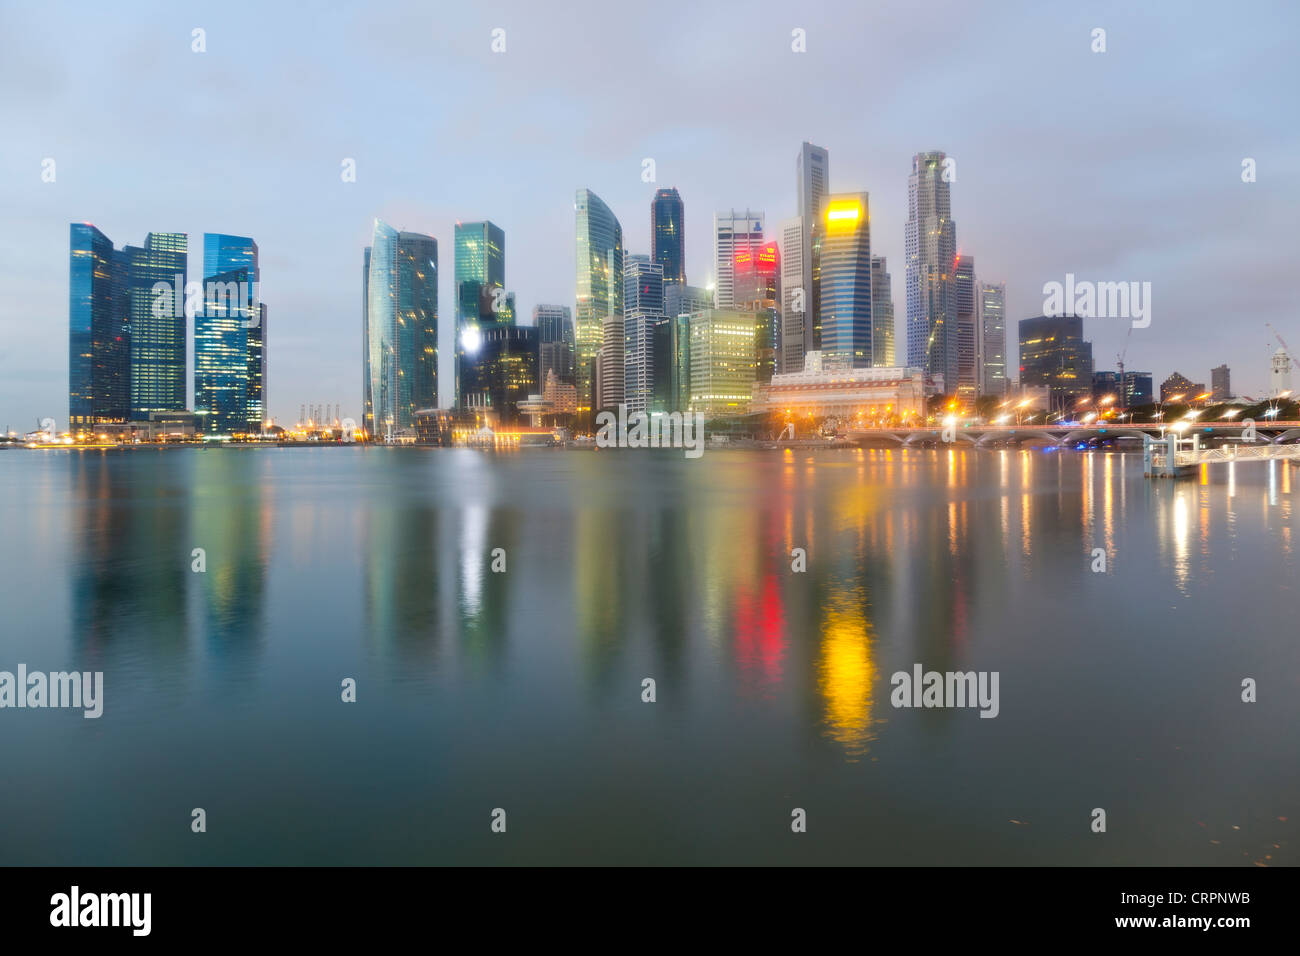 L'Asie du Sud Est, Singapour, Ville, Vue sur Marina Bay au quartier financier et d'affaires de Singapour Photo Stock